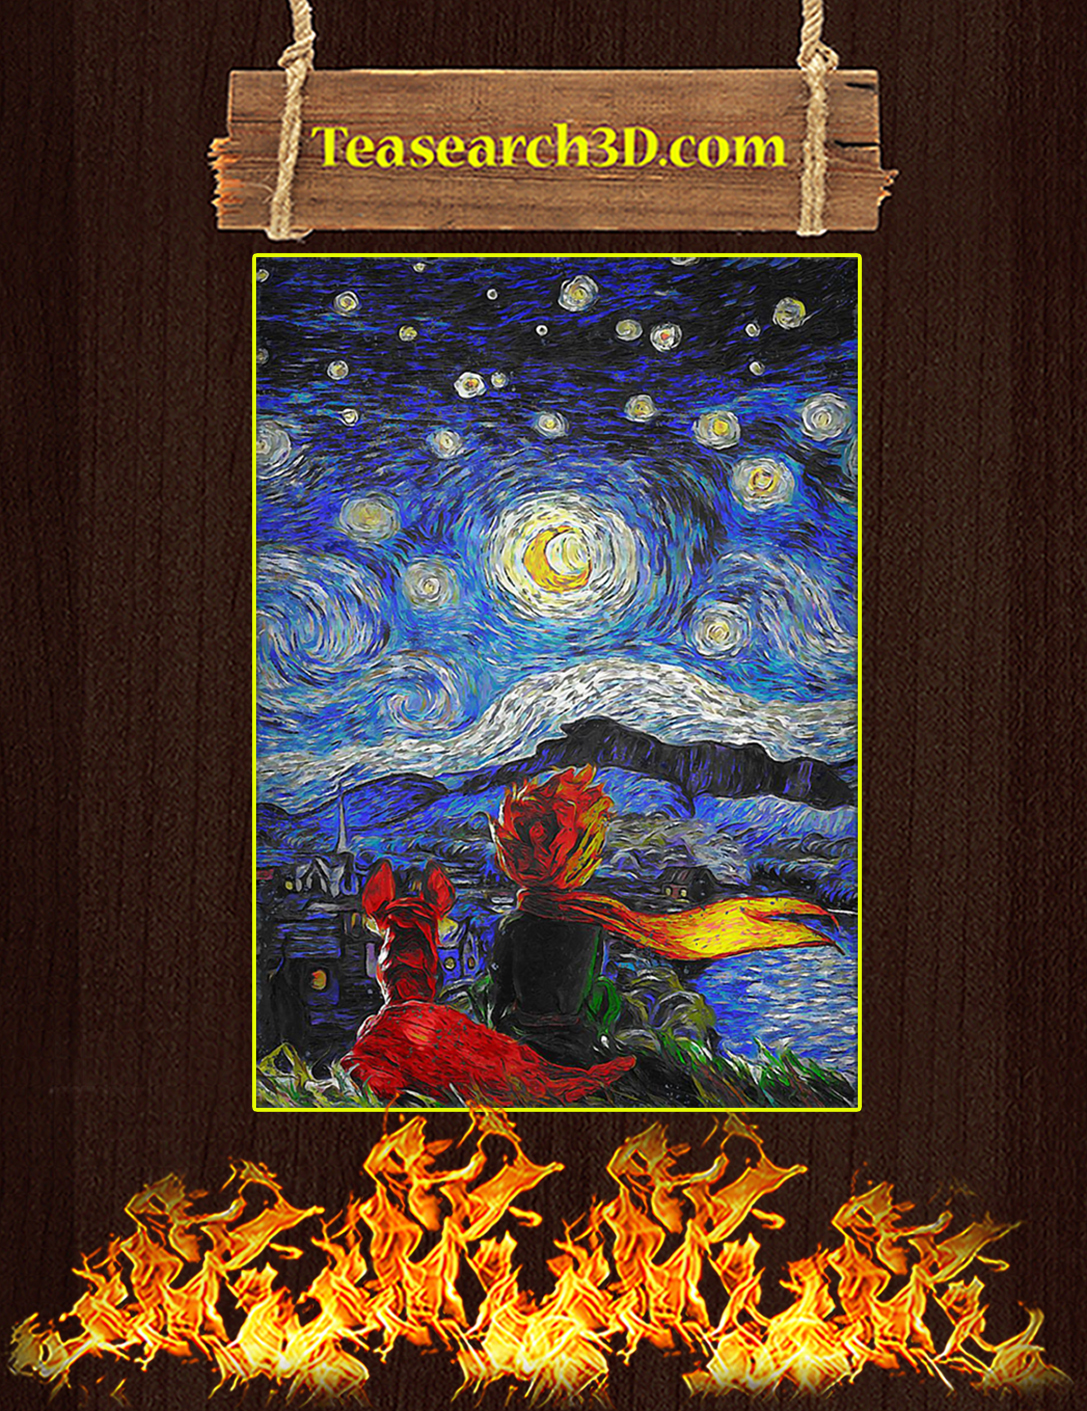 Little prince and fox starry night van gogh poster A2